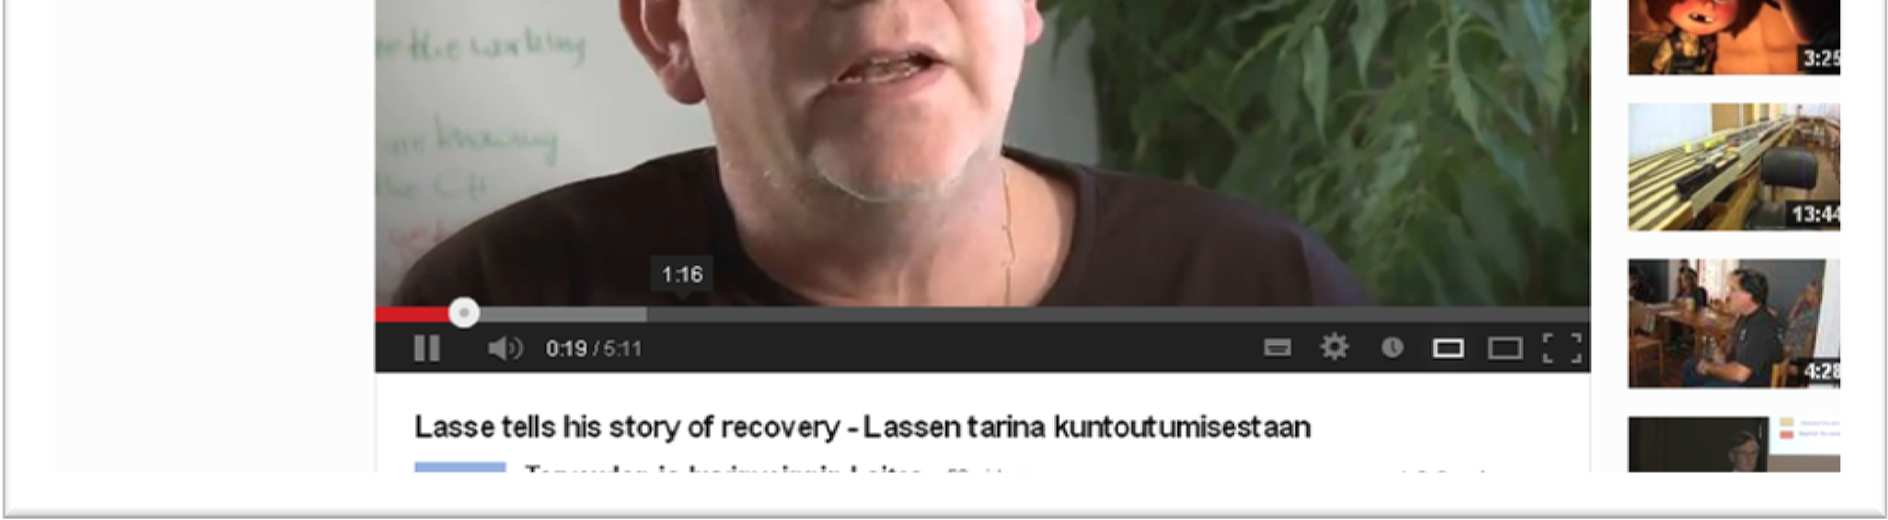 Lasse tells his story: http://www.youtube.com/watch?